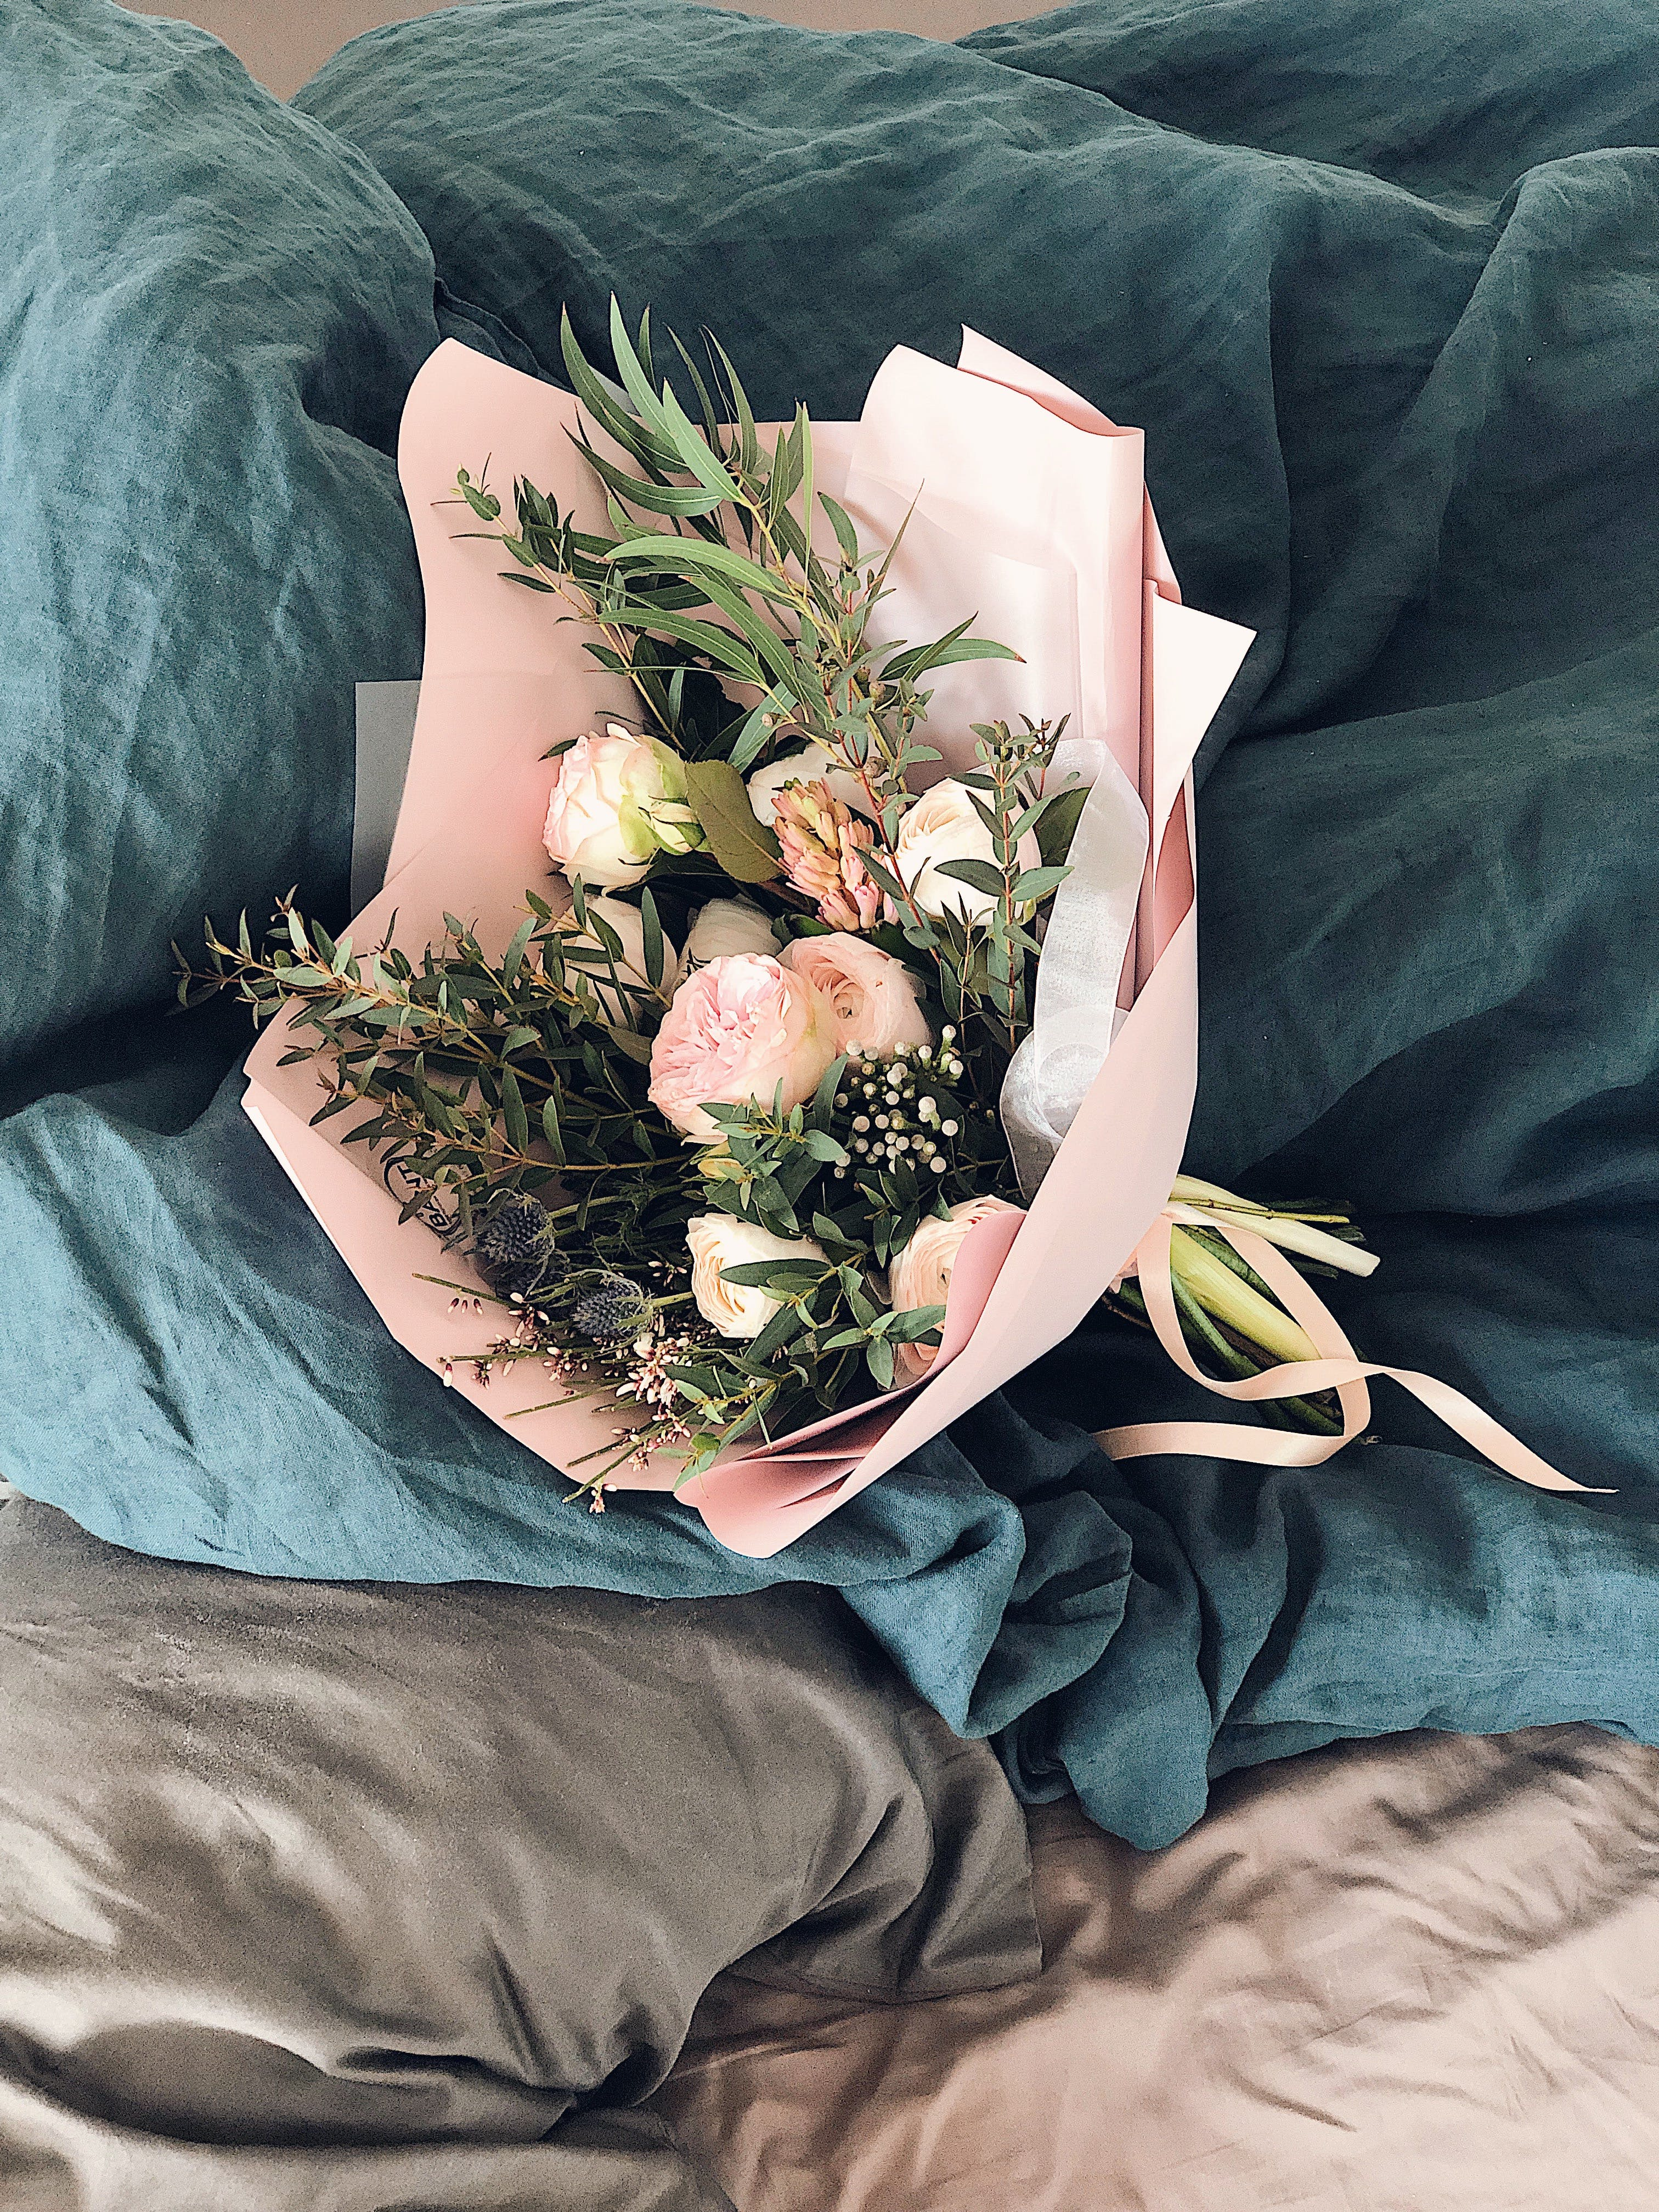 Pink and Green Flower Bouquet on Bed Sheet